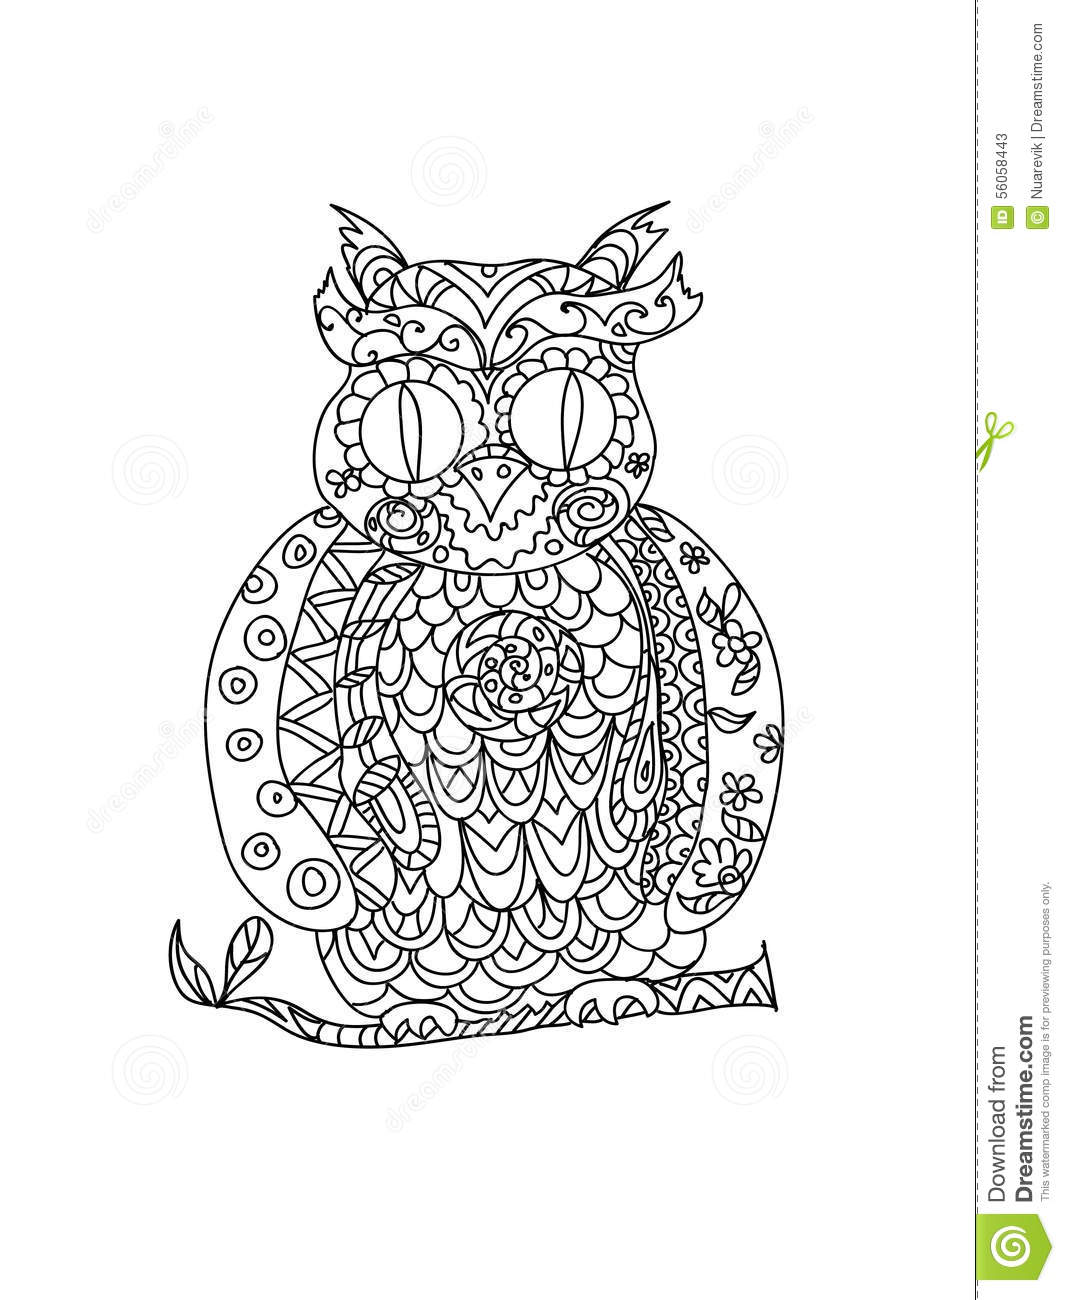 zentangle owl coloring pages - photo#10